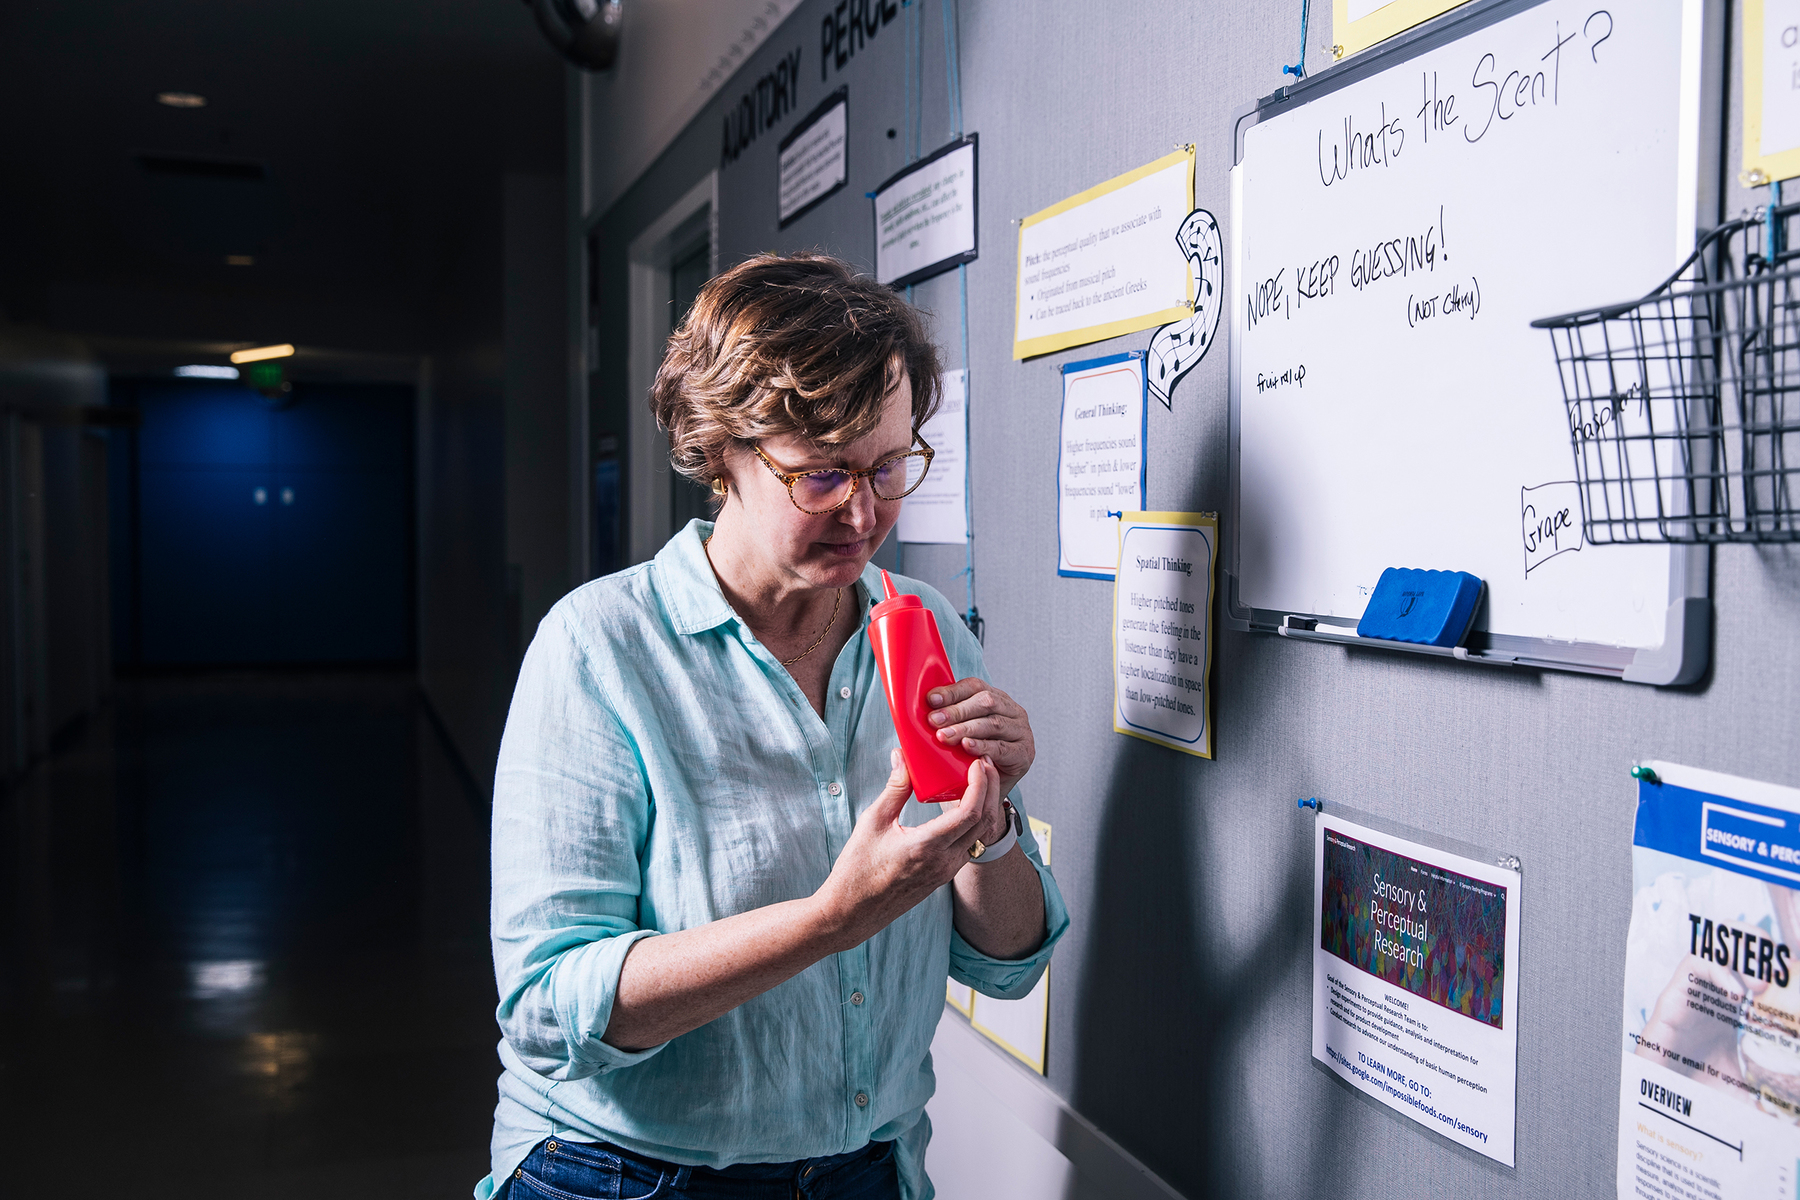 An employee sniffs a sample inside Impossible Foods headquarters in Redwood City, Calif. on Thursday, June 20, 2019.